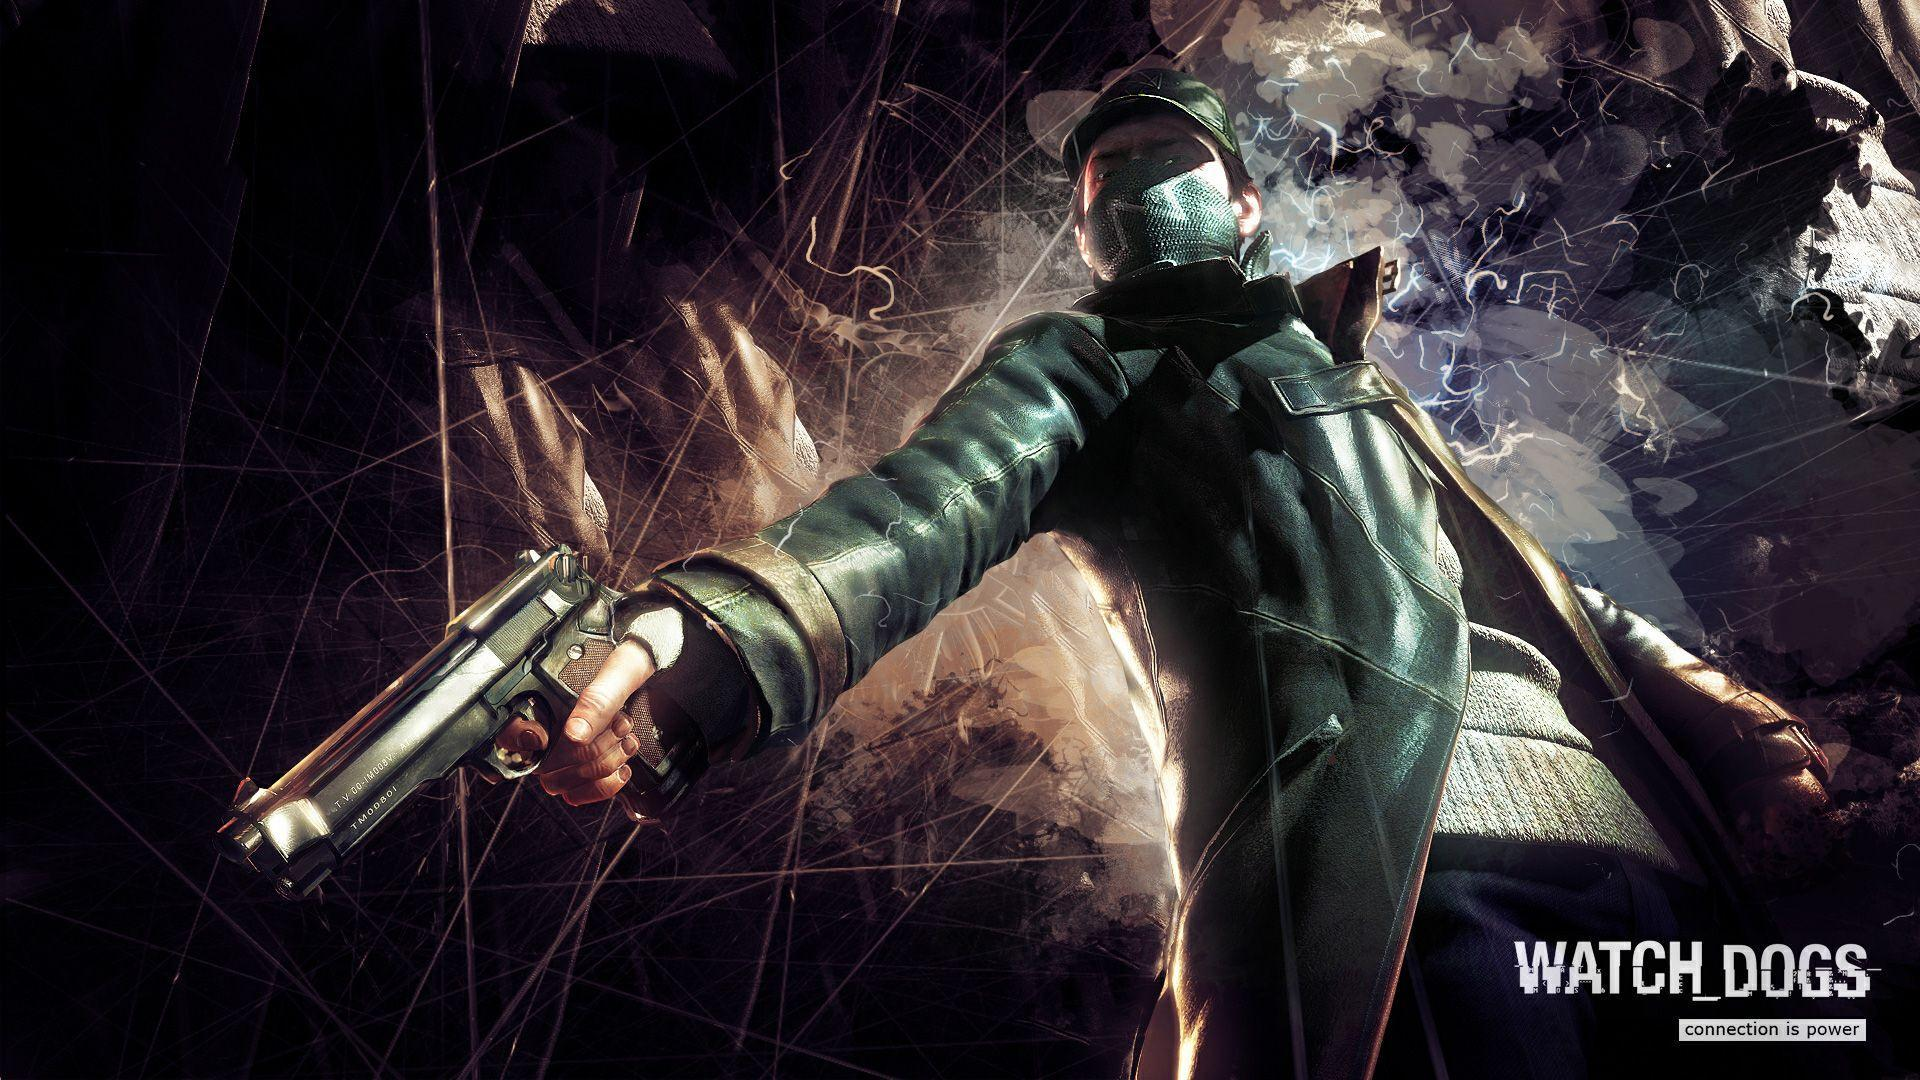 Watch dogs wallpapers wallpaper cave 1000 images about watch dogs on pinterest dog wallpaper hd voltagebd Gallery